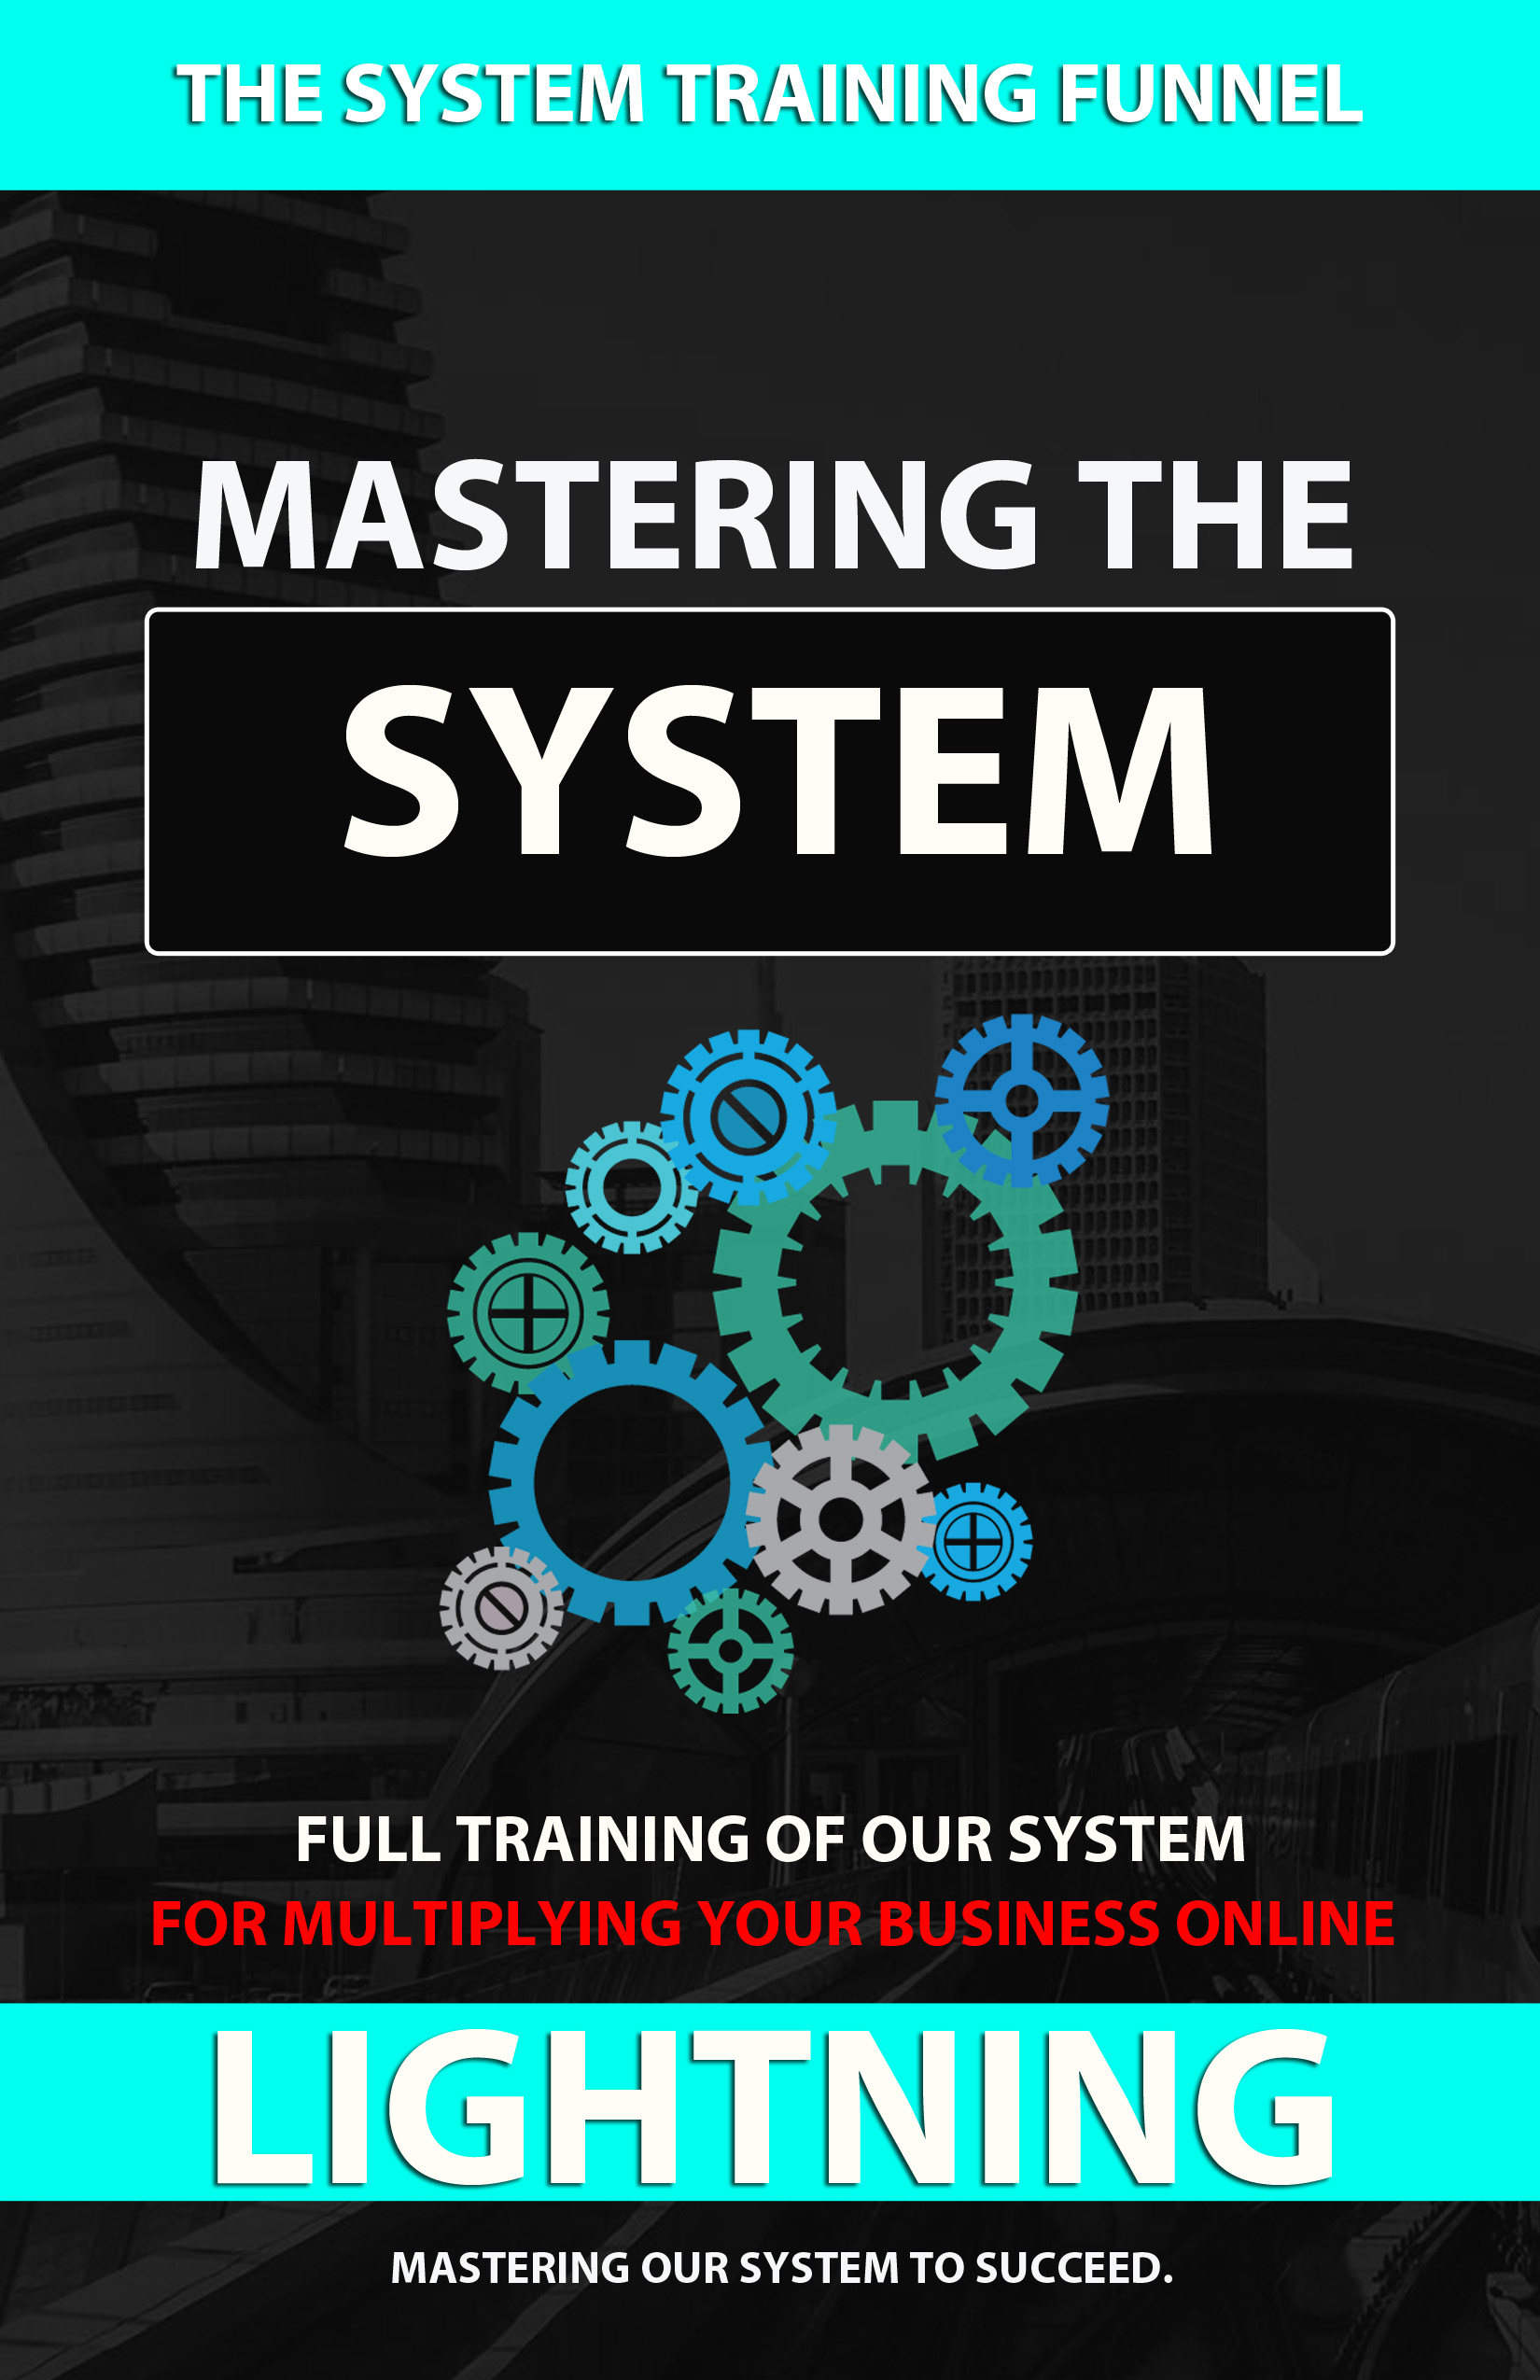 Master the system